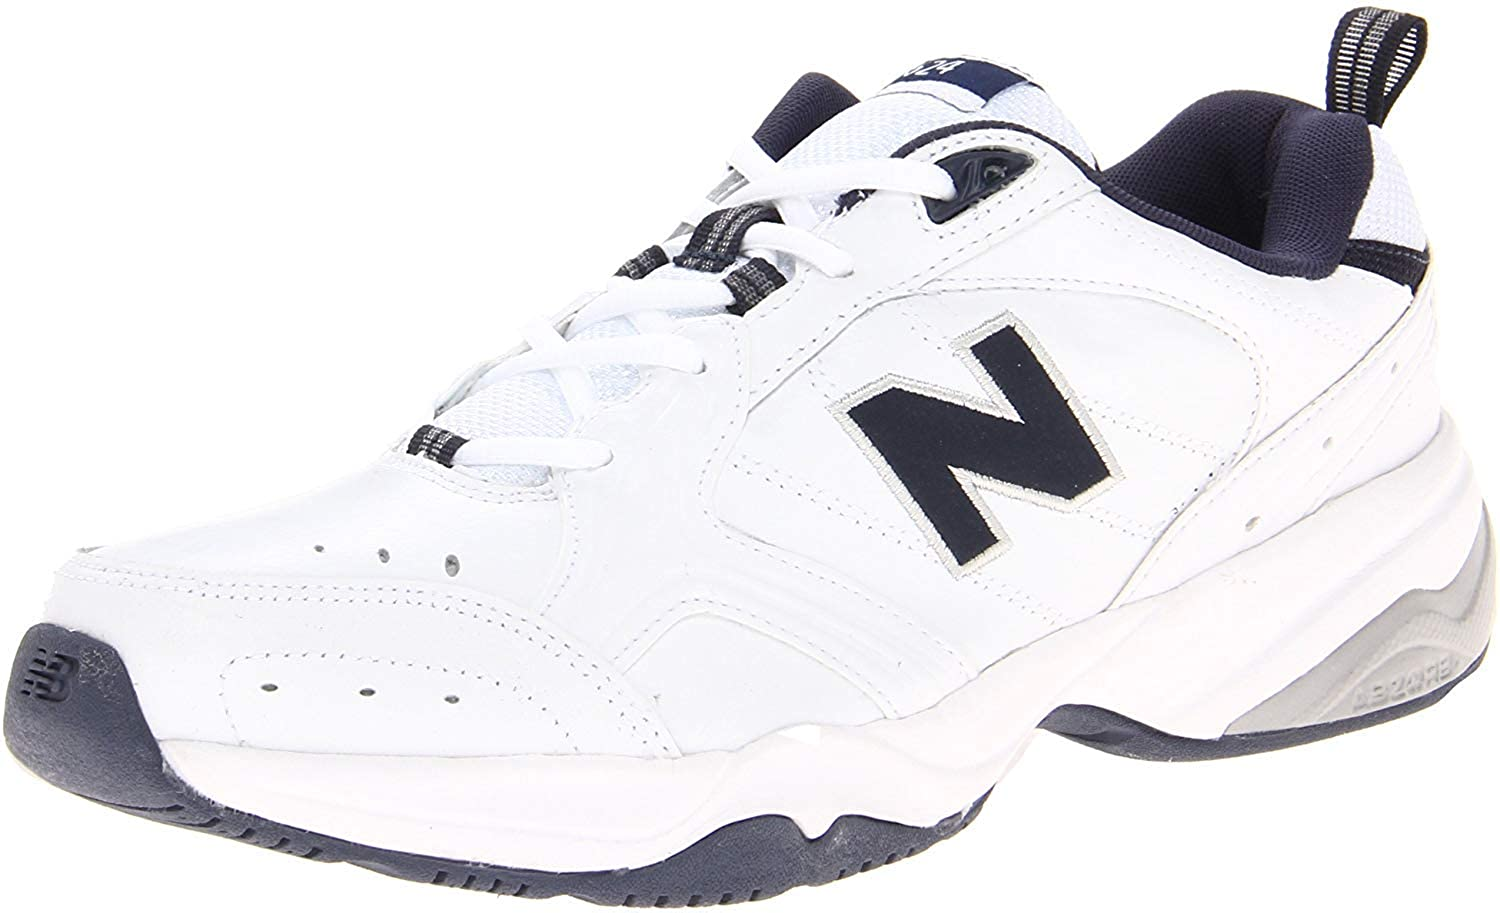 | New Balance Men's 624 V2 Casual Comfort Cross Trainer | Fashion Sneakers